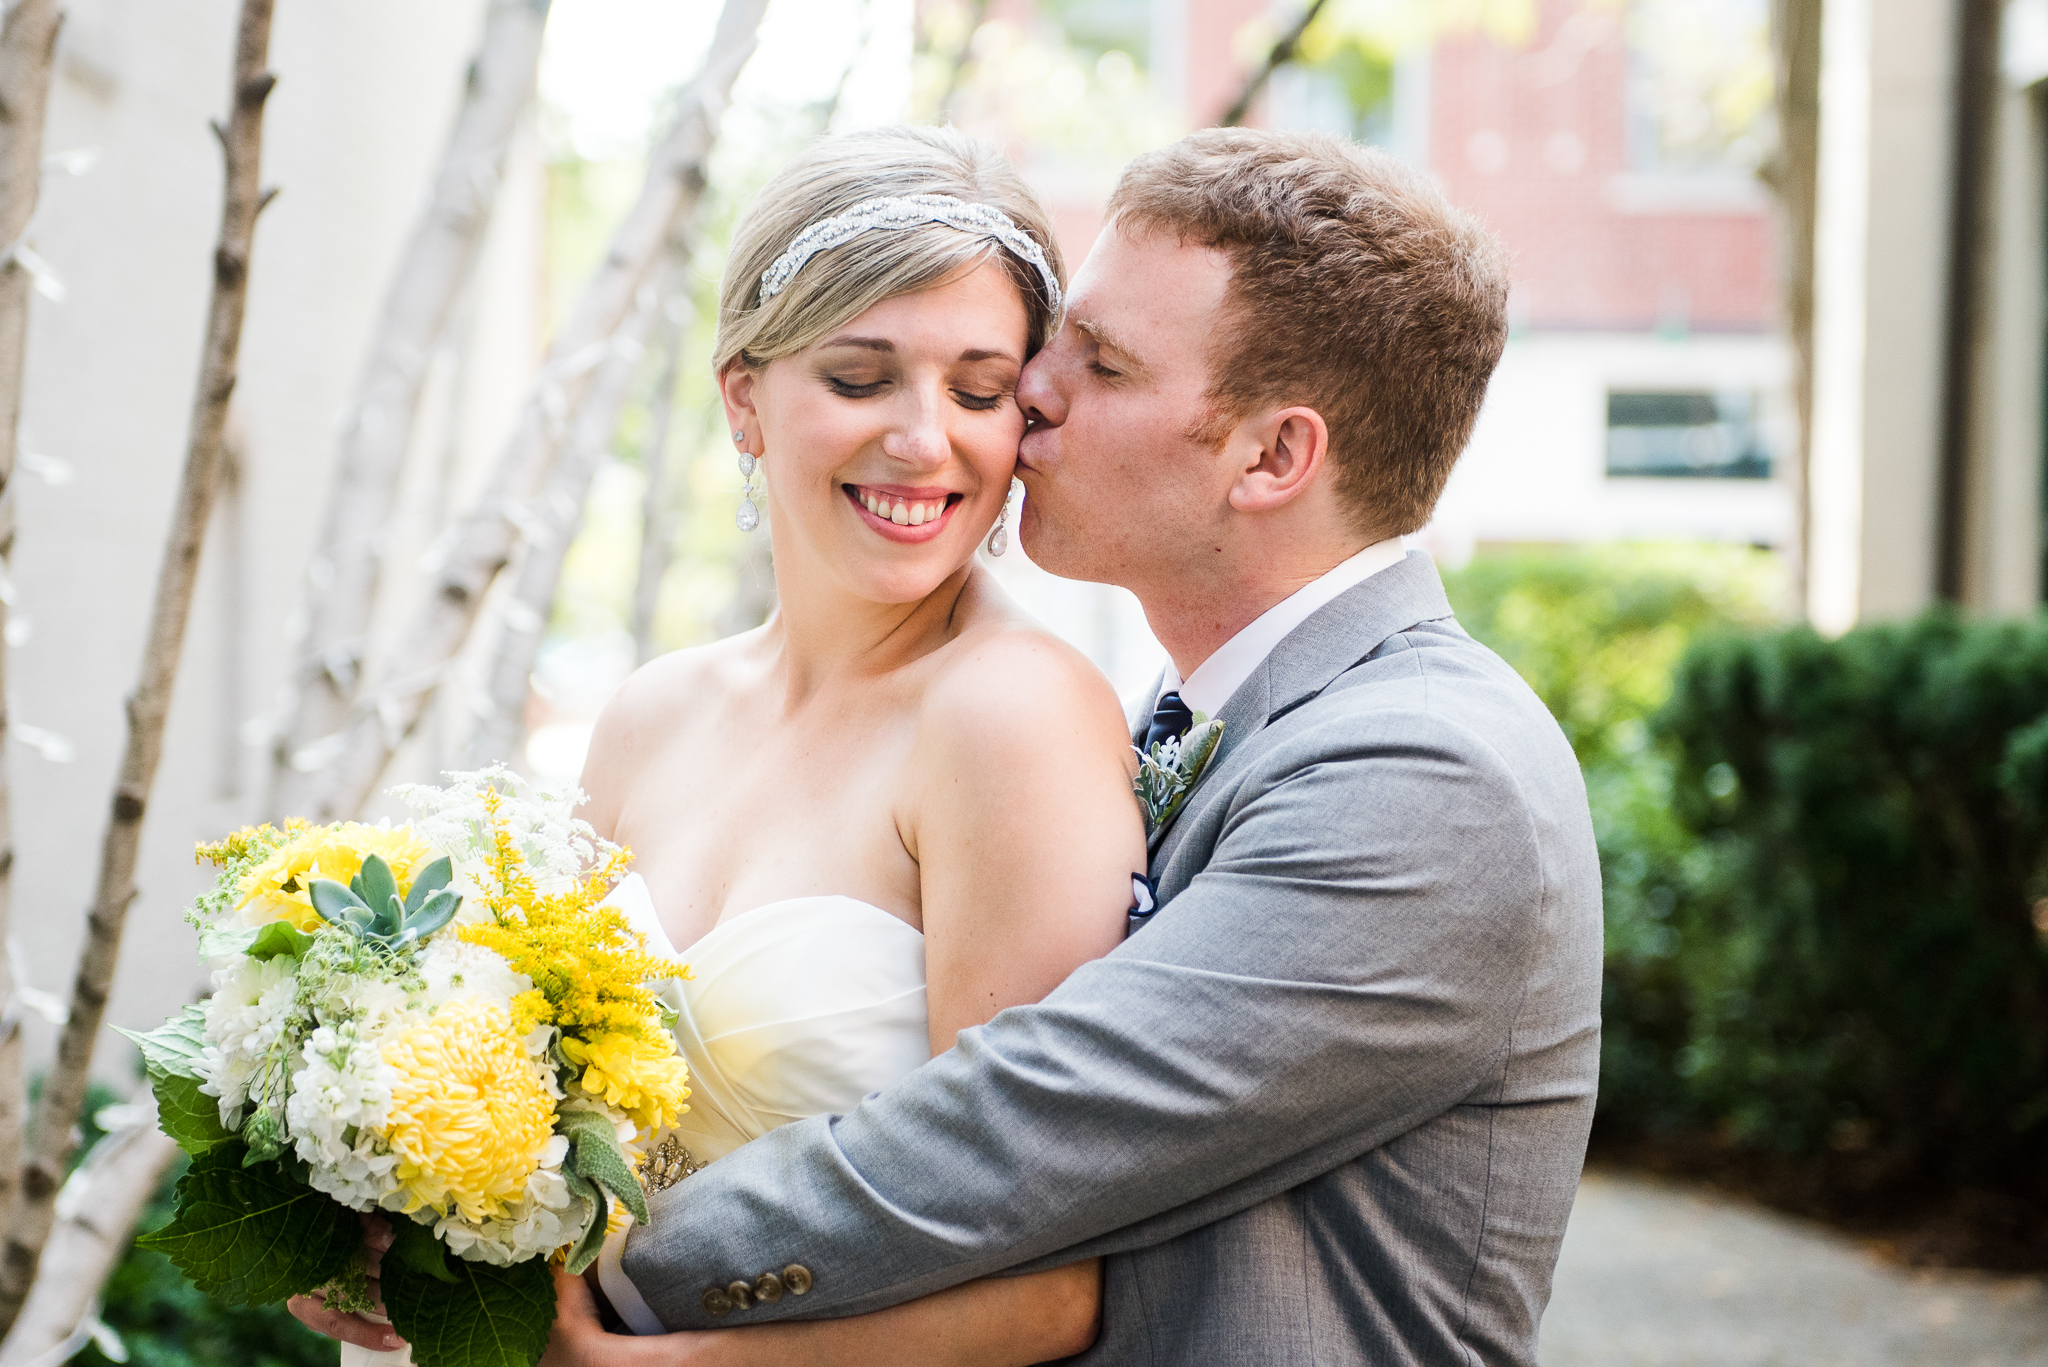 JS Weddings and Events Grand Rapids Wedding Planner and Floral Designer - Navy Blue and Yellow, Classic and Natural Wedding at Baker Events Holland